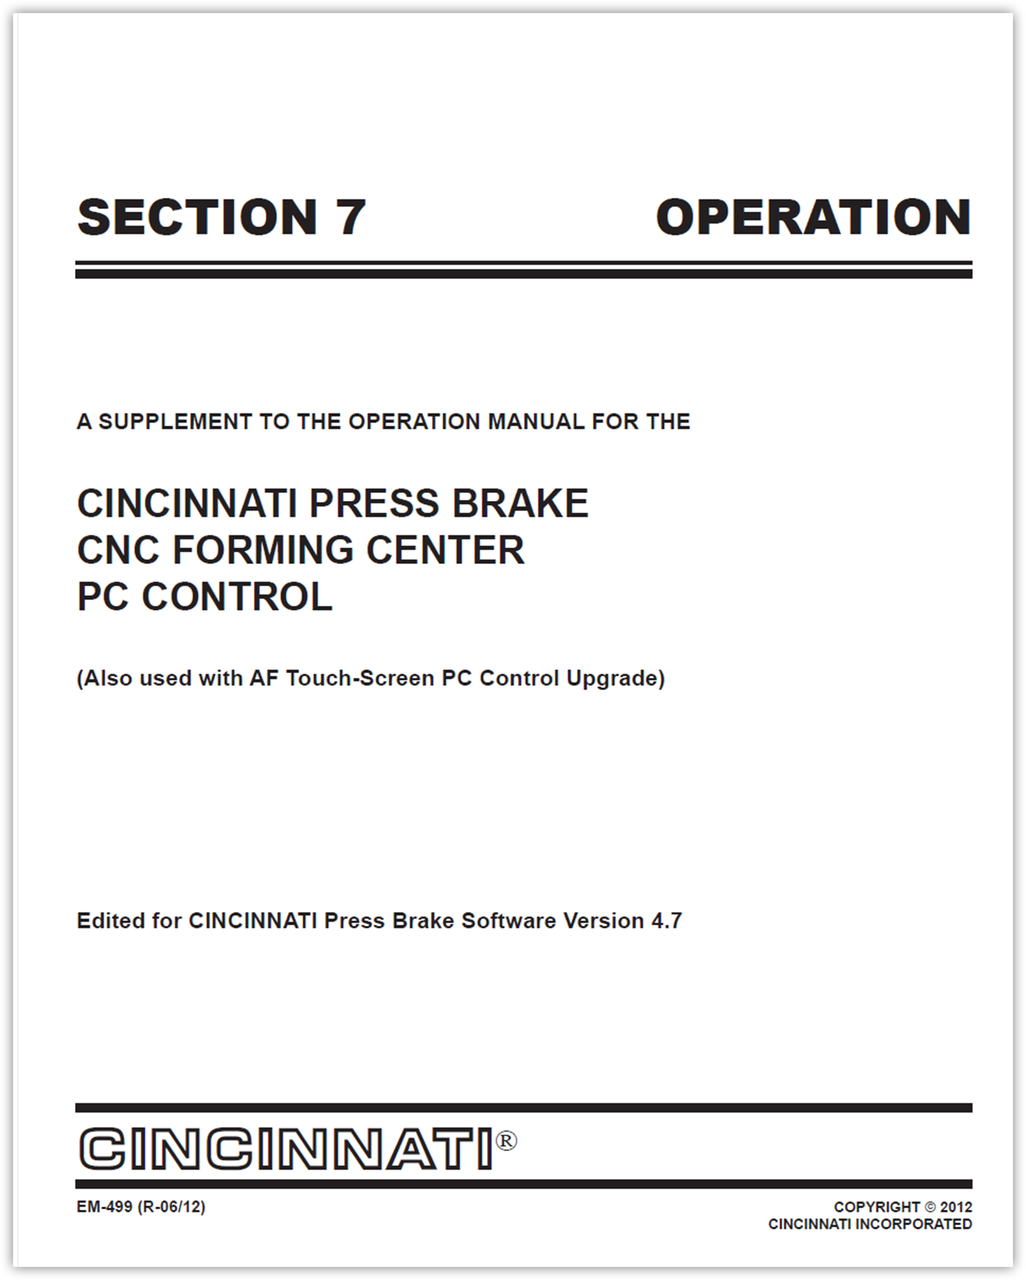 EM-499 (V47_R-11-12) SECTION 7 OPERATION AUTOFORM PC Control Supplement Manual